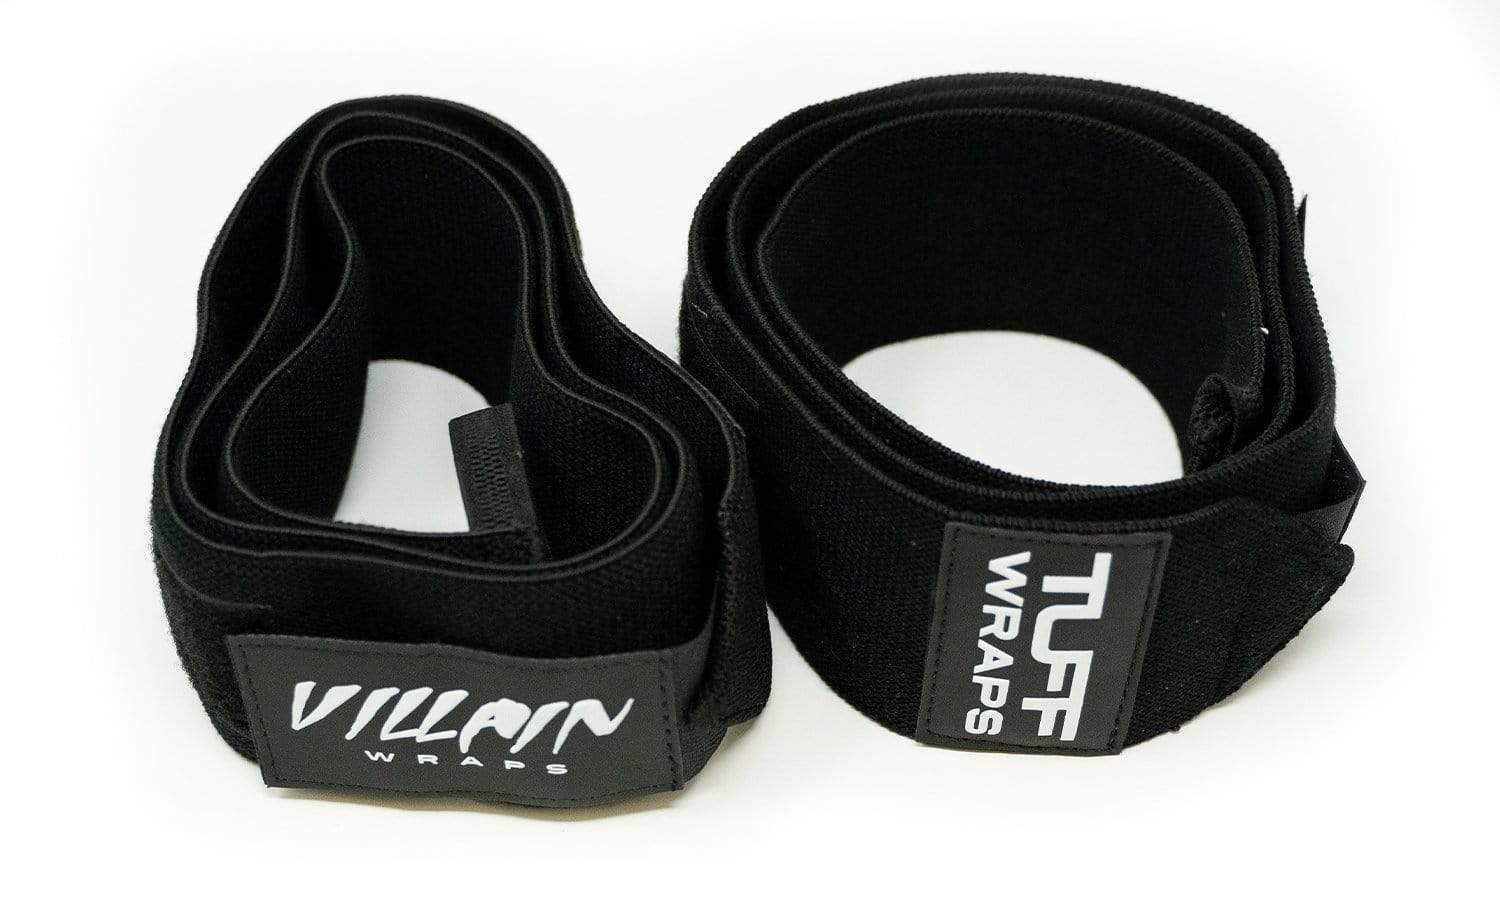 Villain Elbow Wraps - All Black